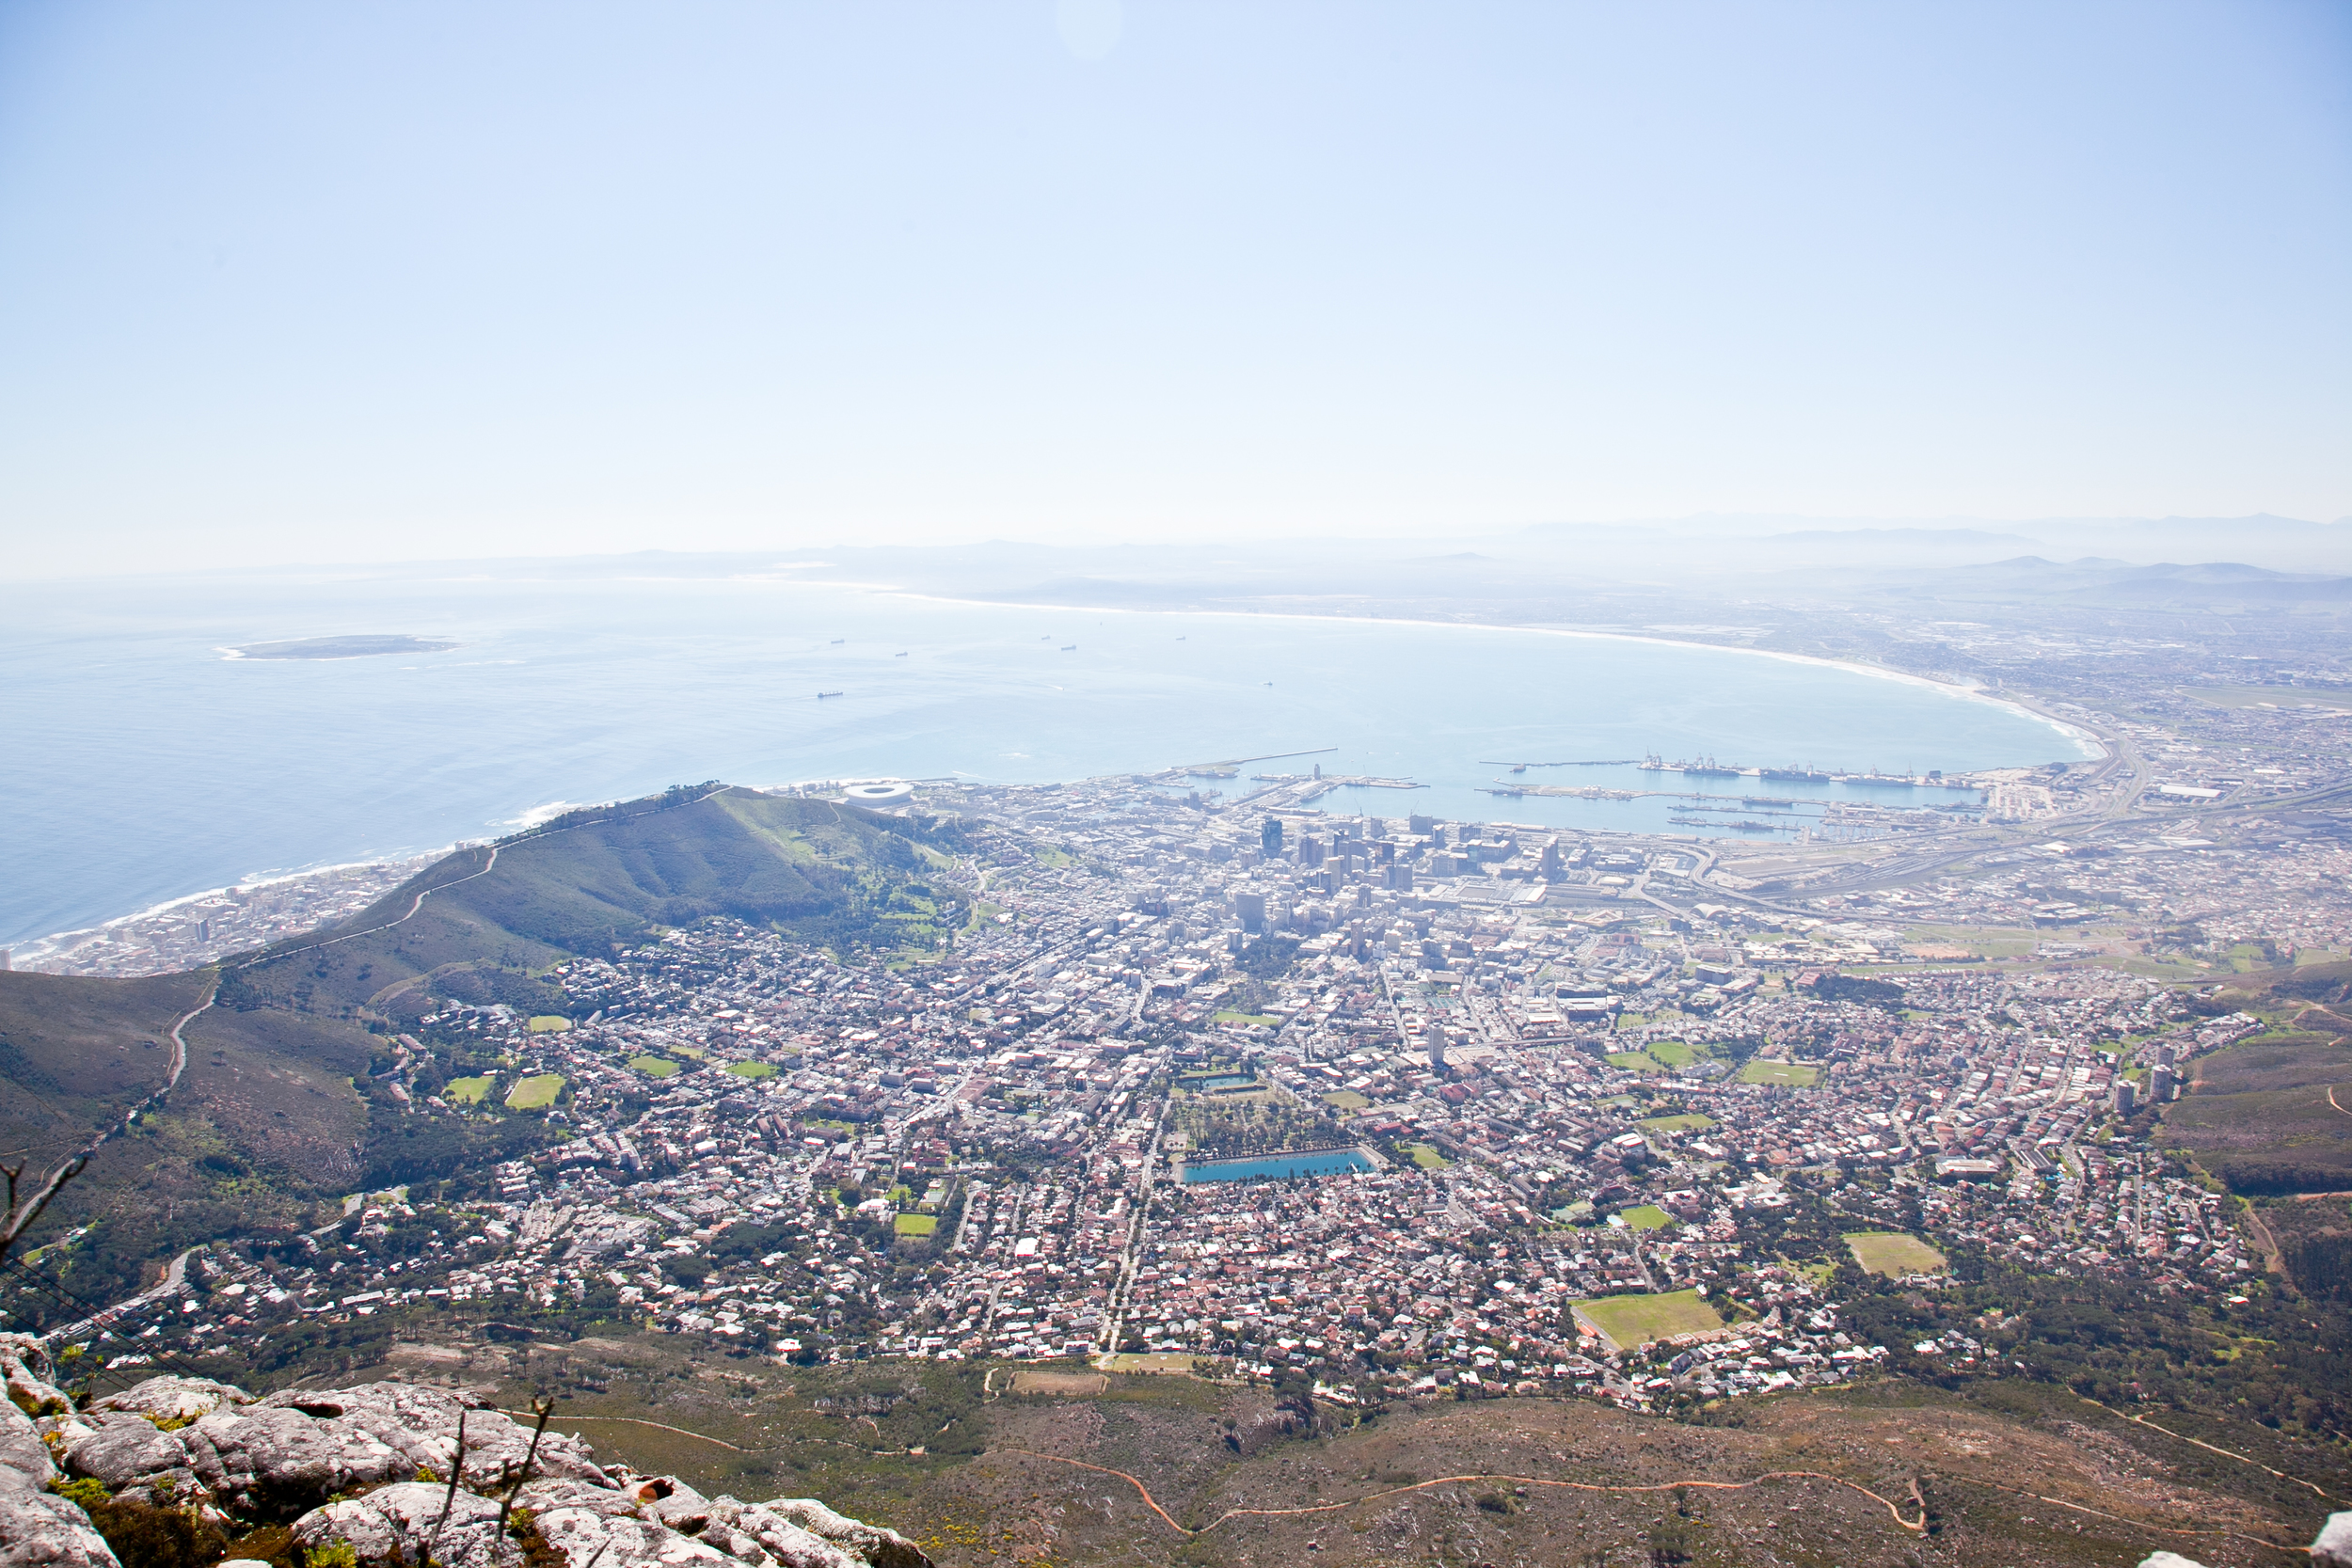 IMG_4654-table-mountain-cape-town-south-africa-trisa-taro.jpg